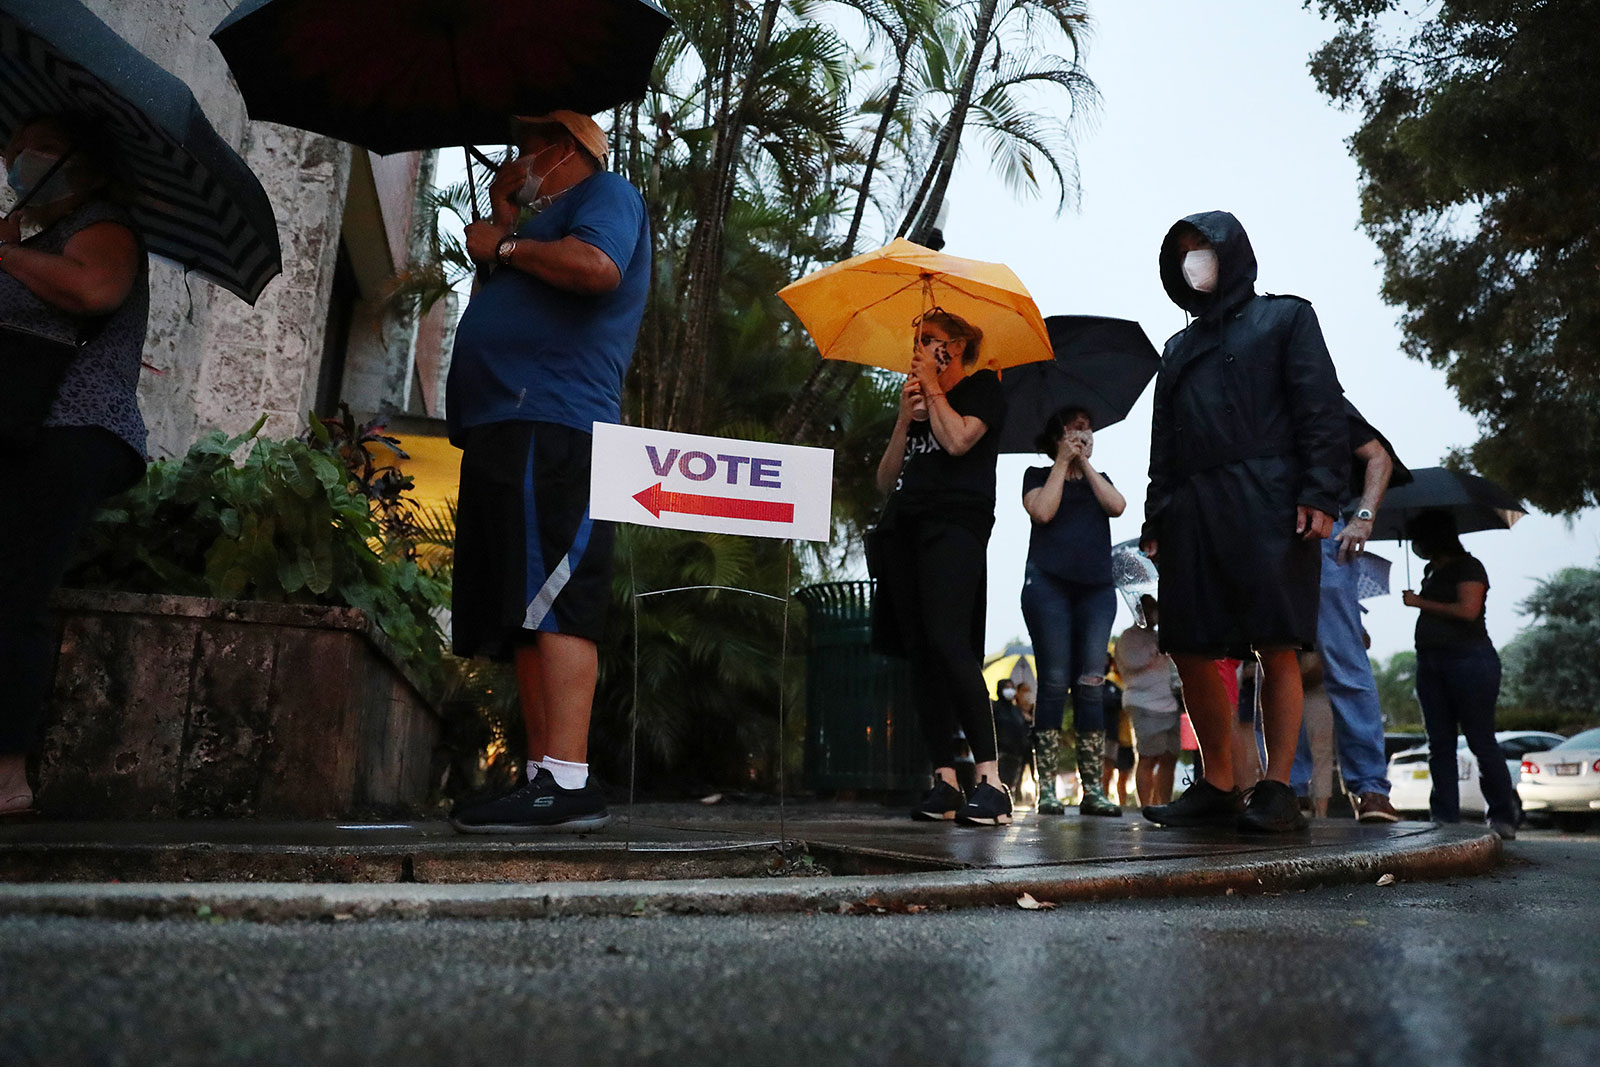 People wait in line to vote in Coral Gables, Florida, on Monday, October 19.